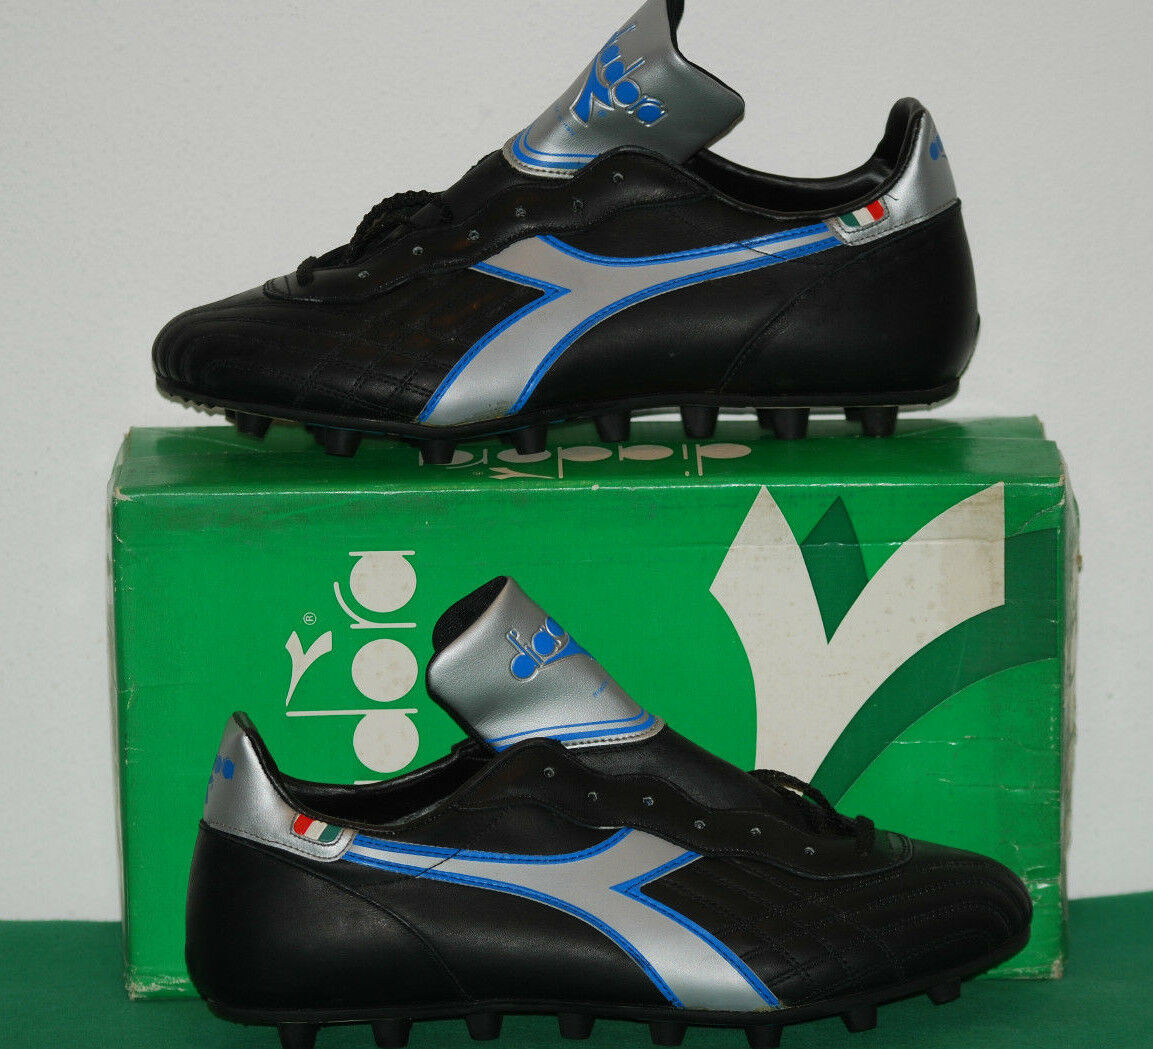 Vintage diadora boats NAPOLI PRO kangaroo GALLI world cup 1982 MEXICO no worn